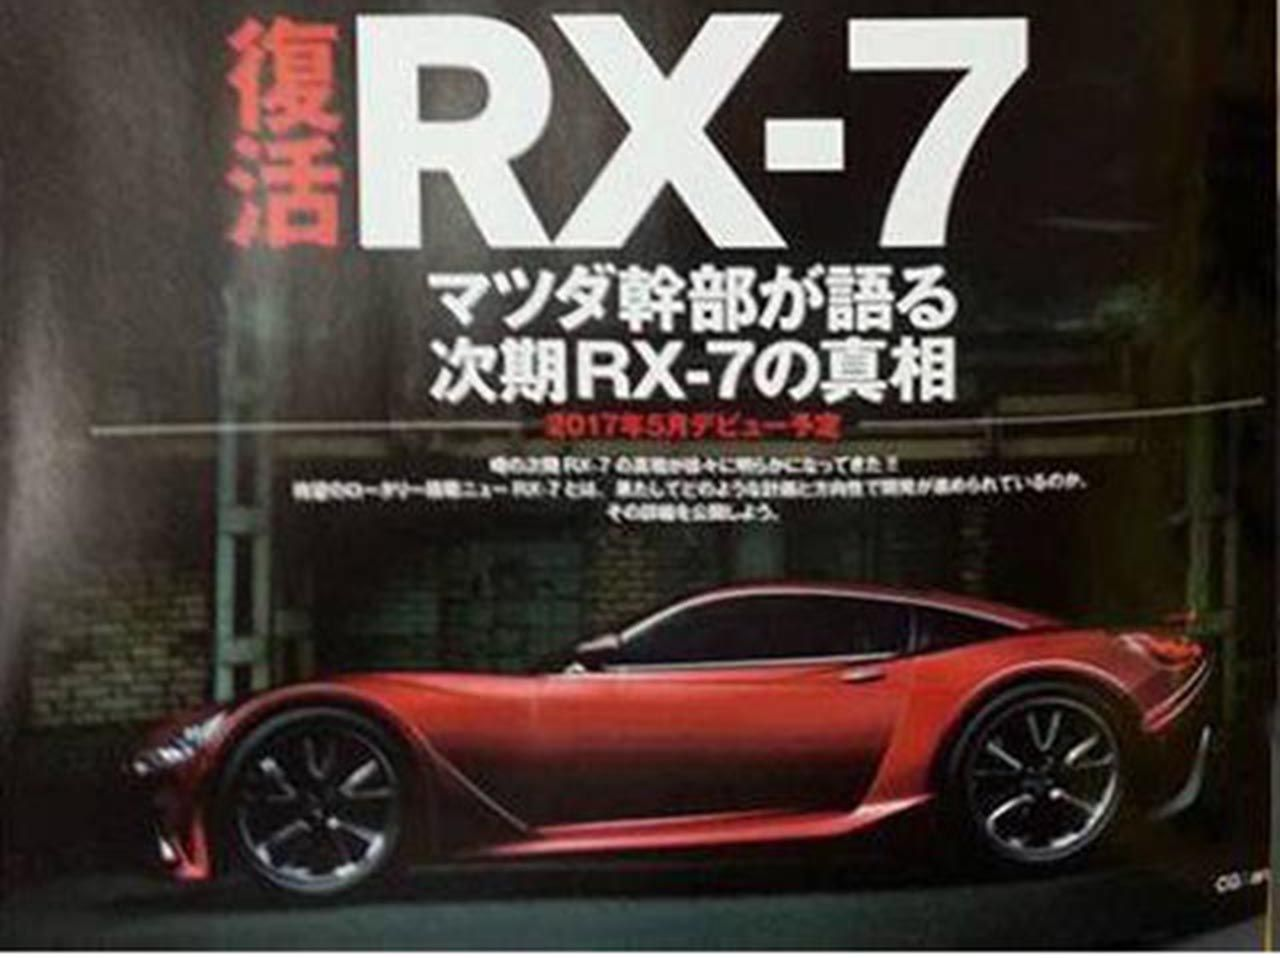 2017 mazda rx7 concept, specs and review - http://www